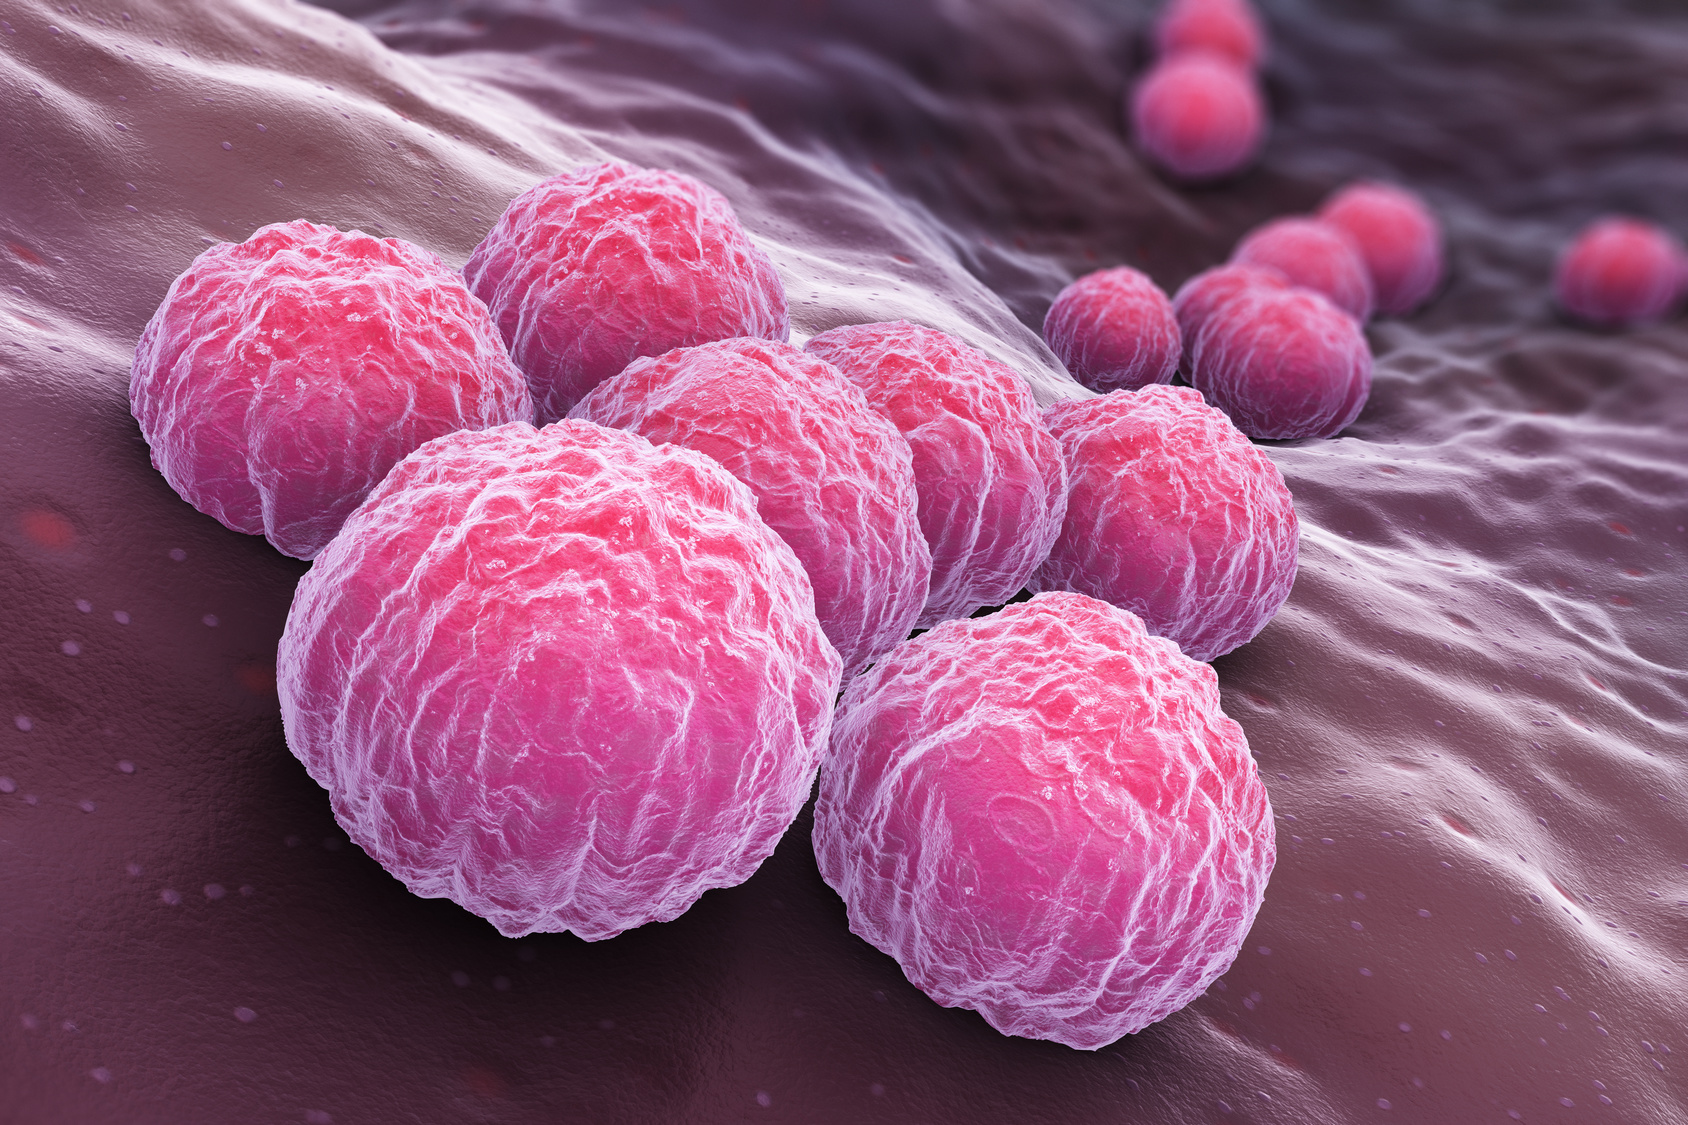 an introduction to the chlamydia a bacterium chlamydia trachomatis Chlamydia: introduction chlamydia infection is one of the most common types of sexually transmitted disease chlamydia infection is the result of a bacterial infection of the genital tract by the bacterium chlamydia trachomatis.